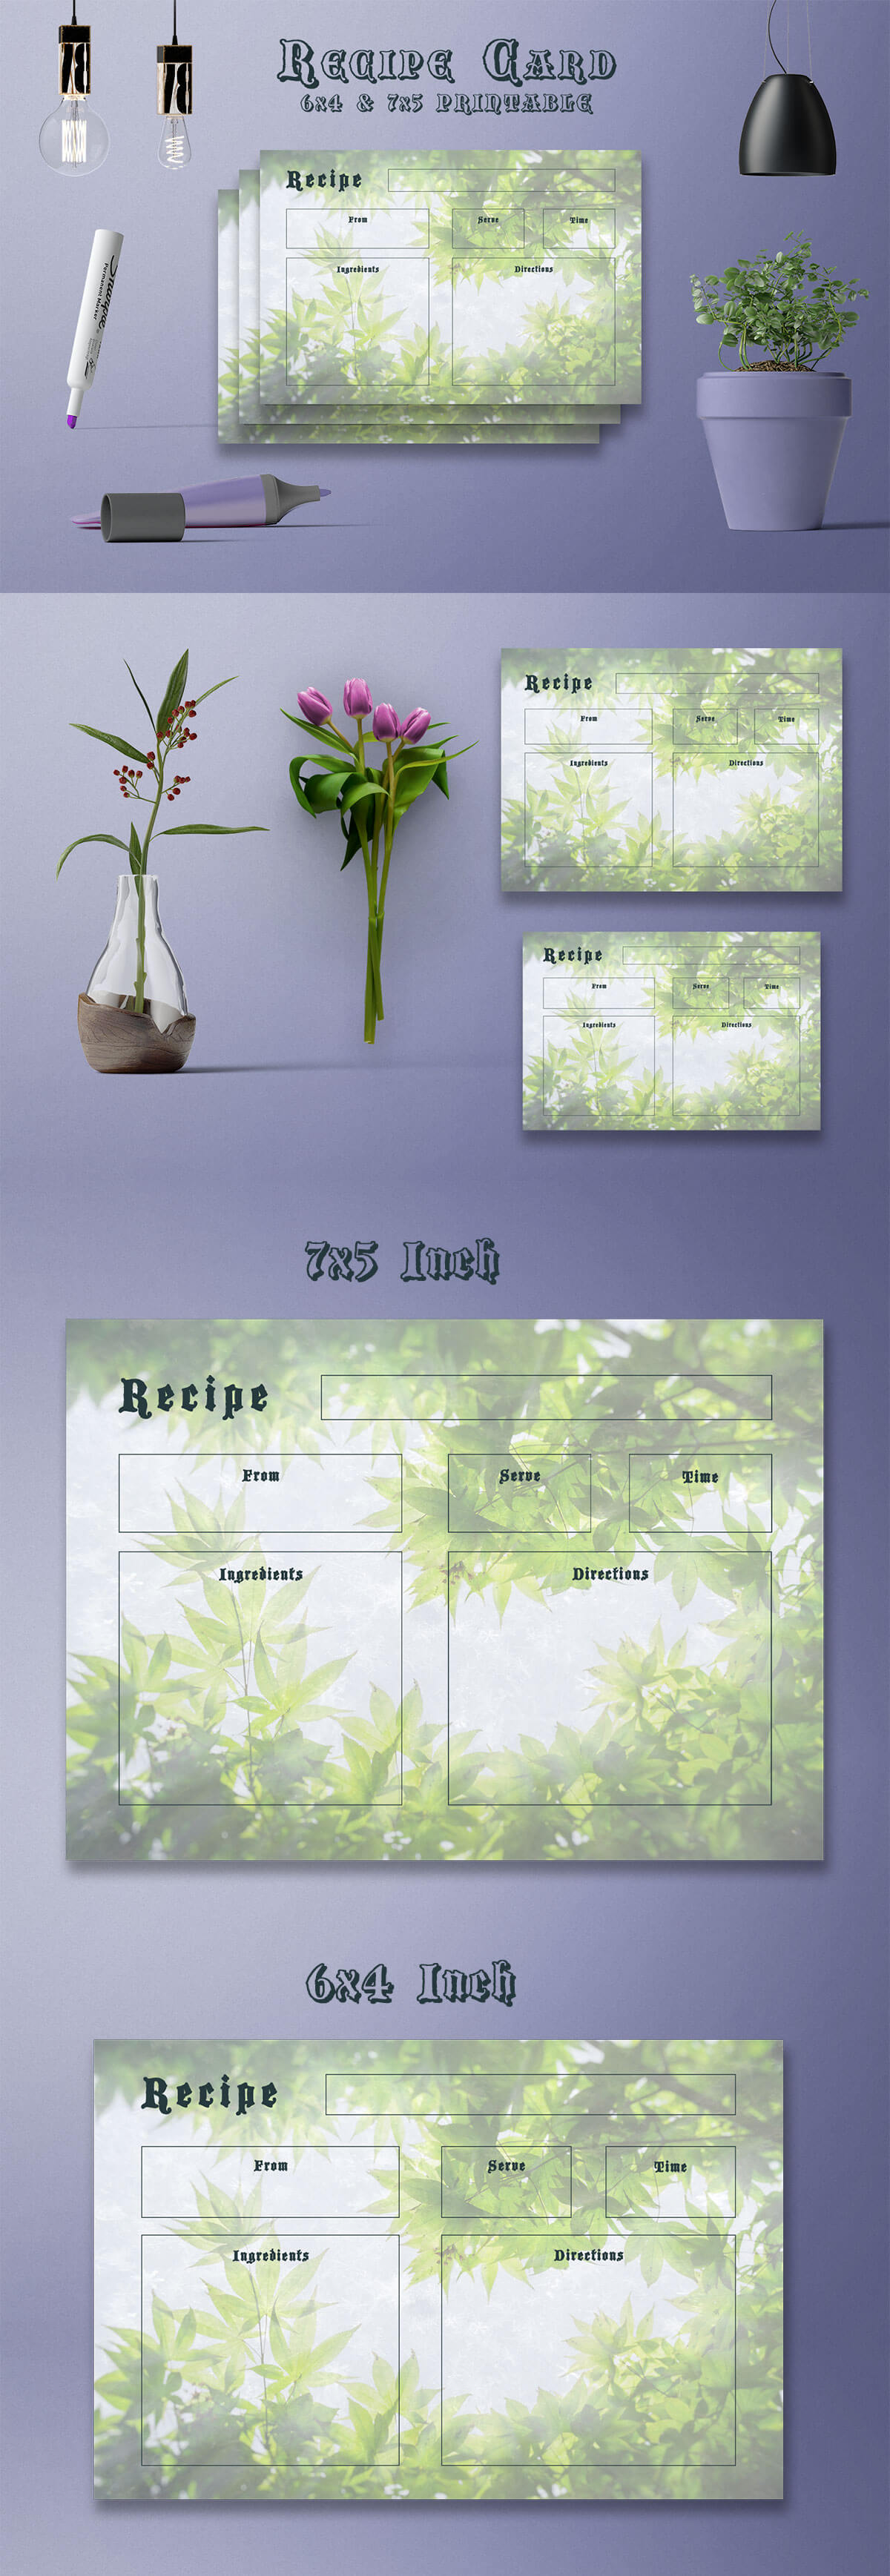 Free Tropical Style Recipe Card Template V36